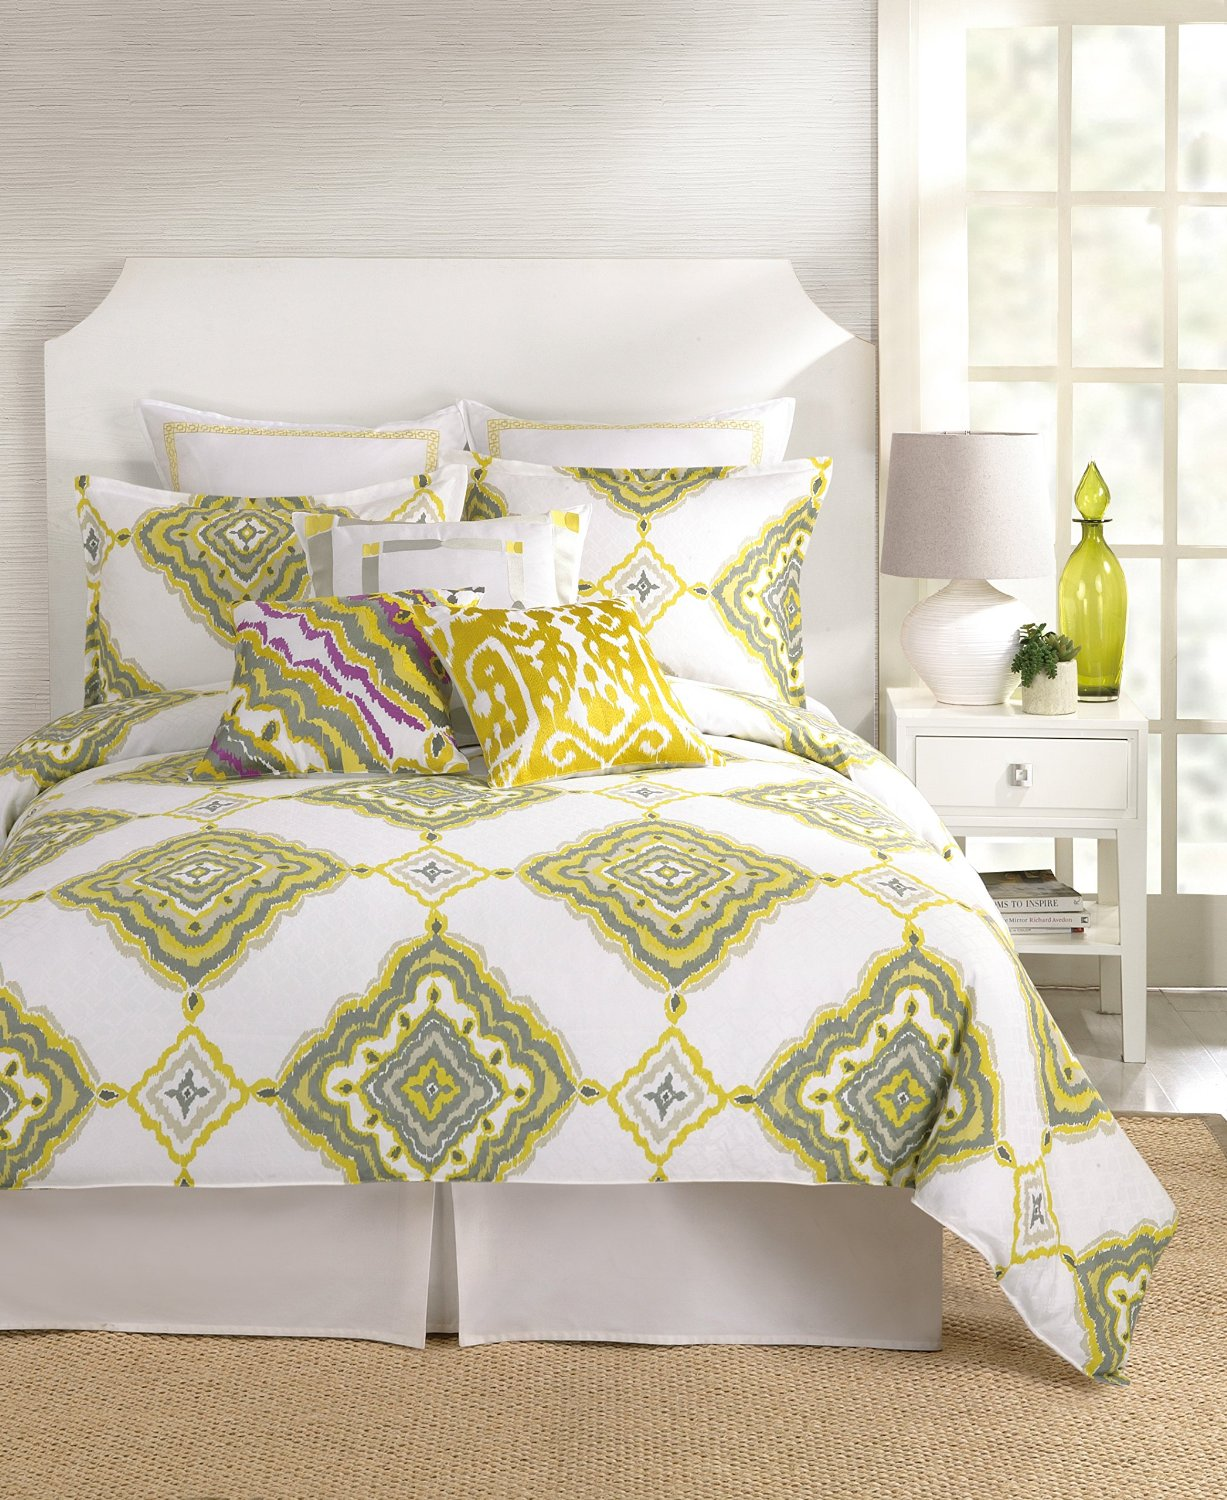 Trina Turk 3 Piece Bedding Set In White U0026 Mustard Yellow